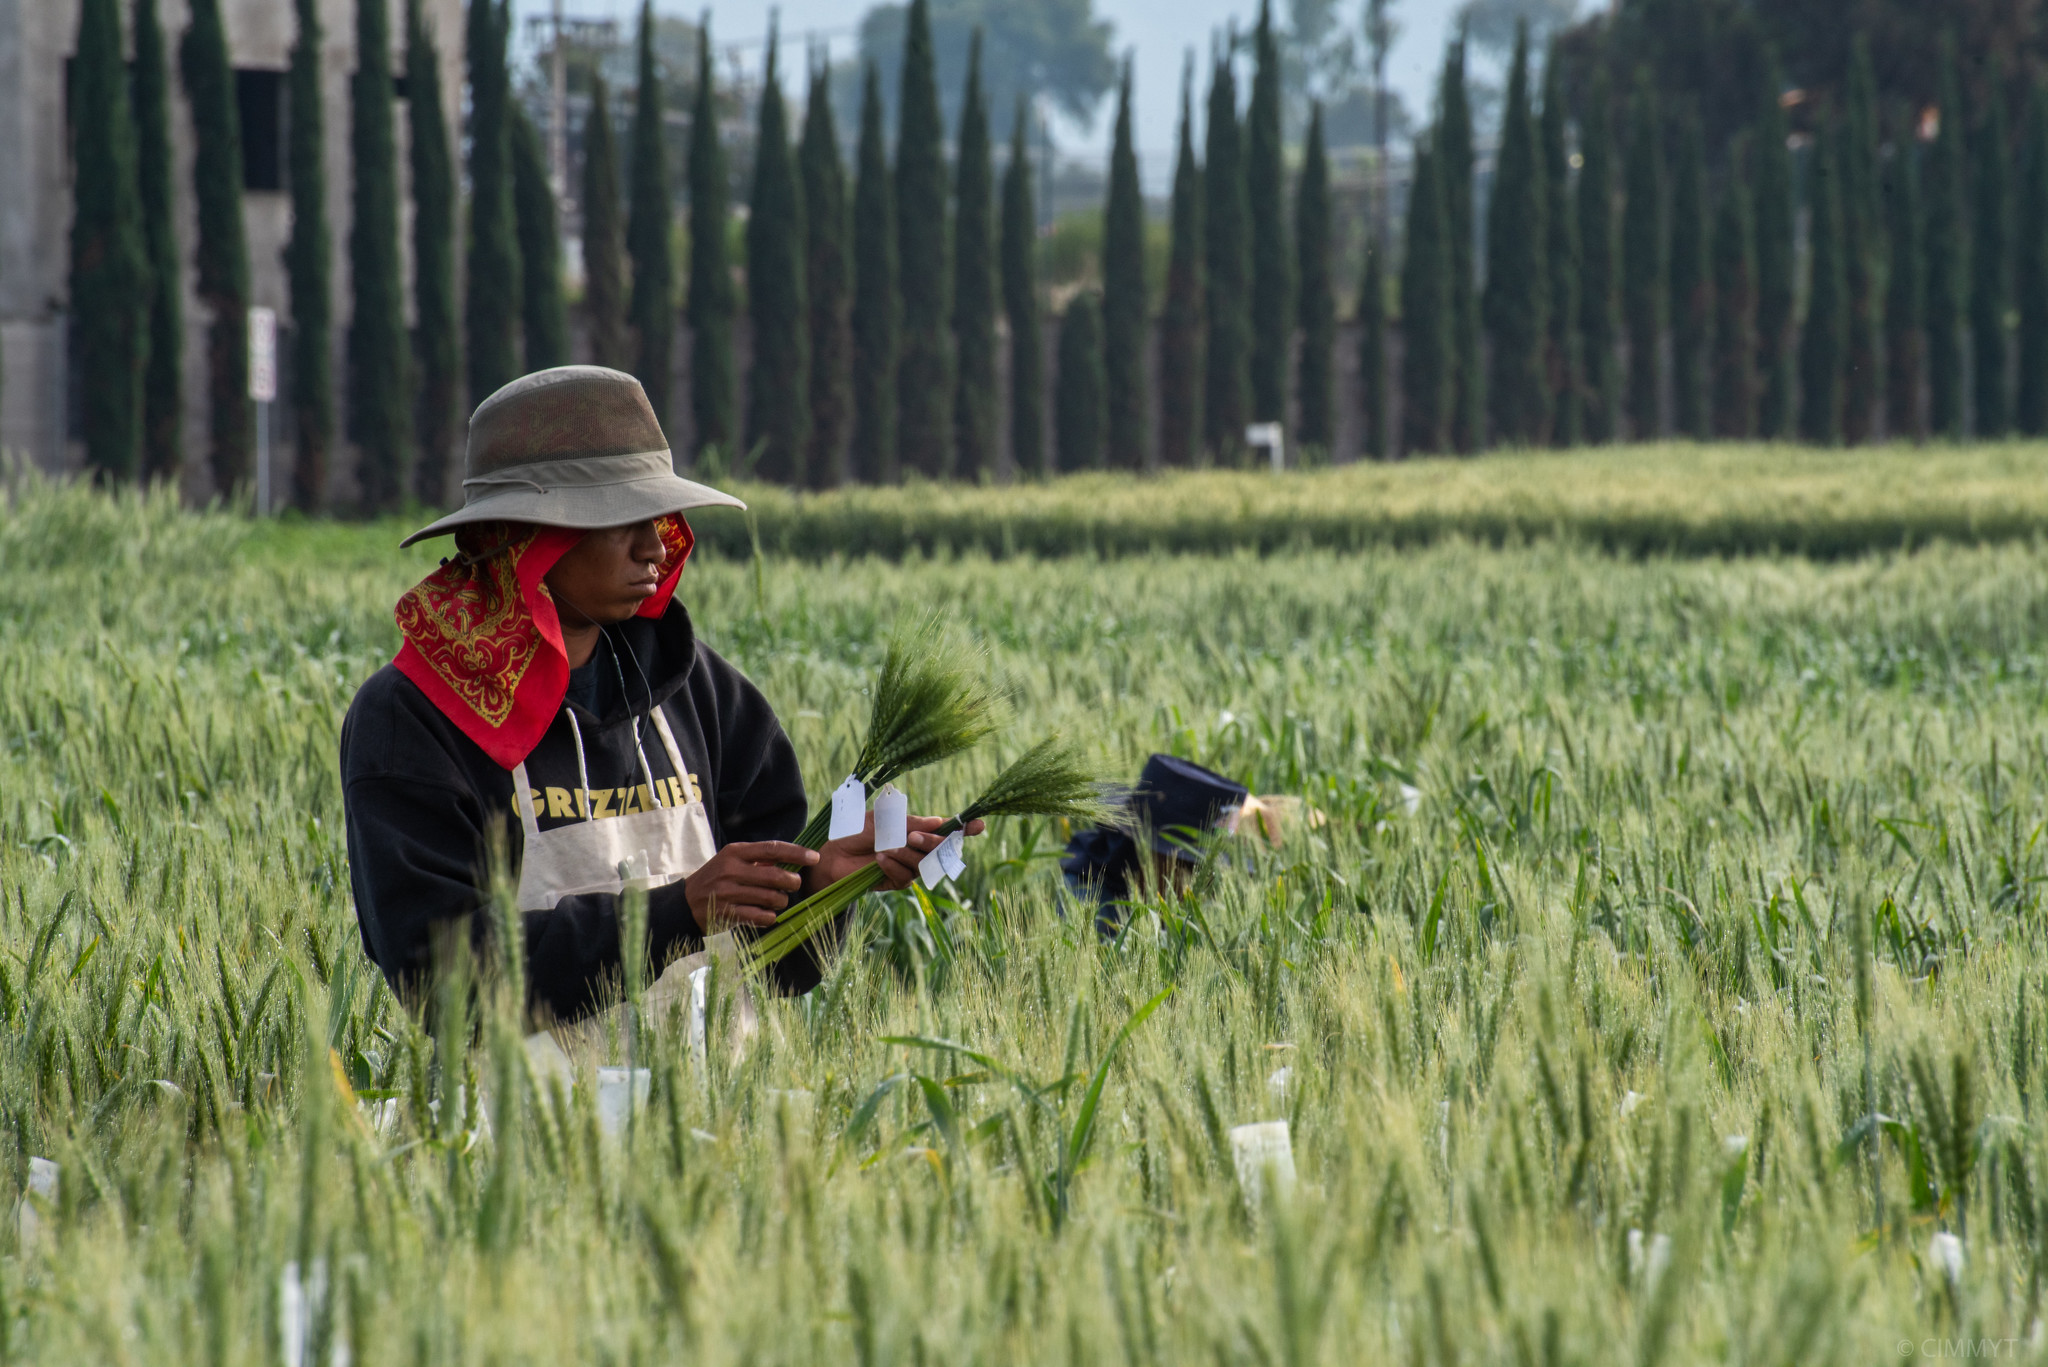 Wheat disease common to South America jumps to Africa